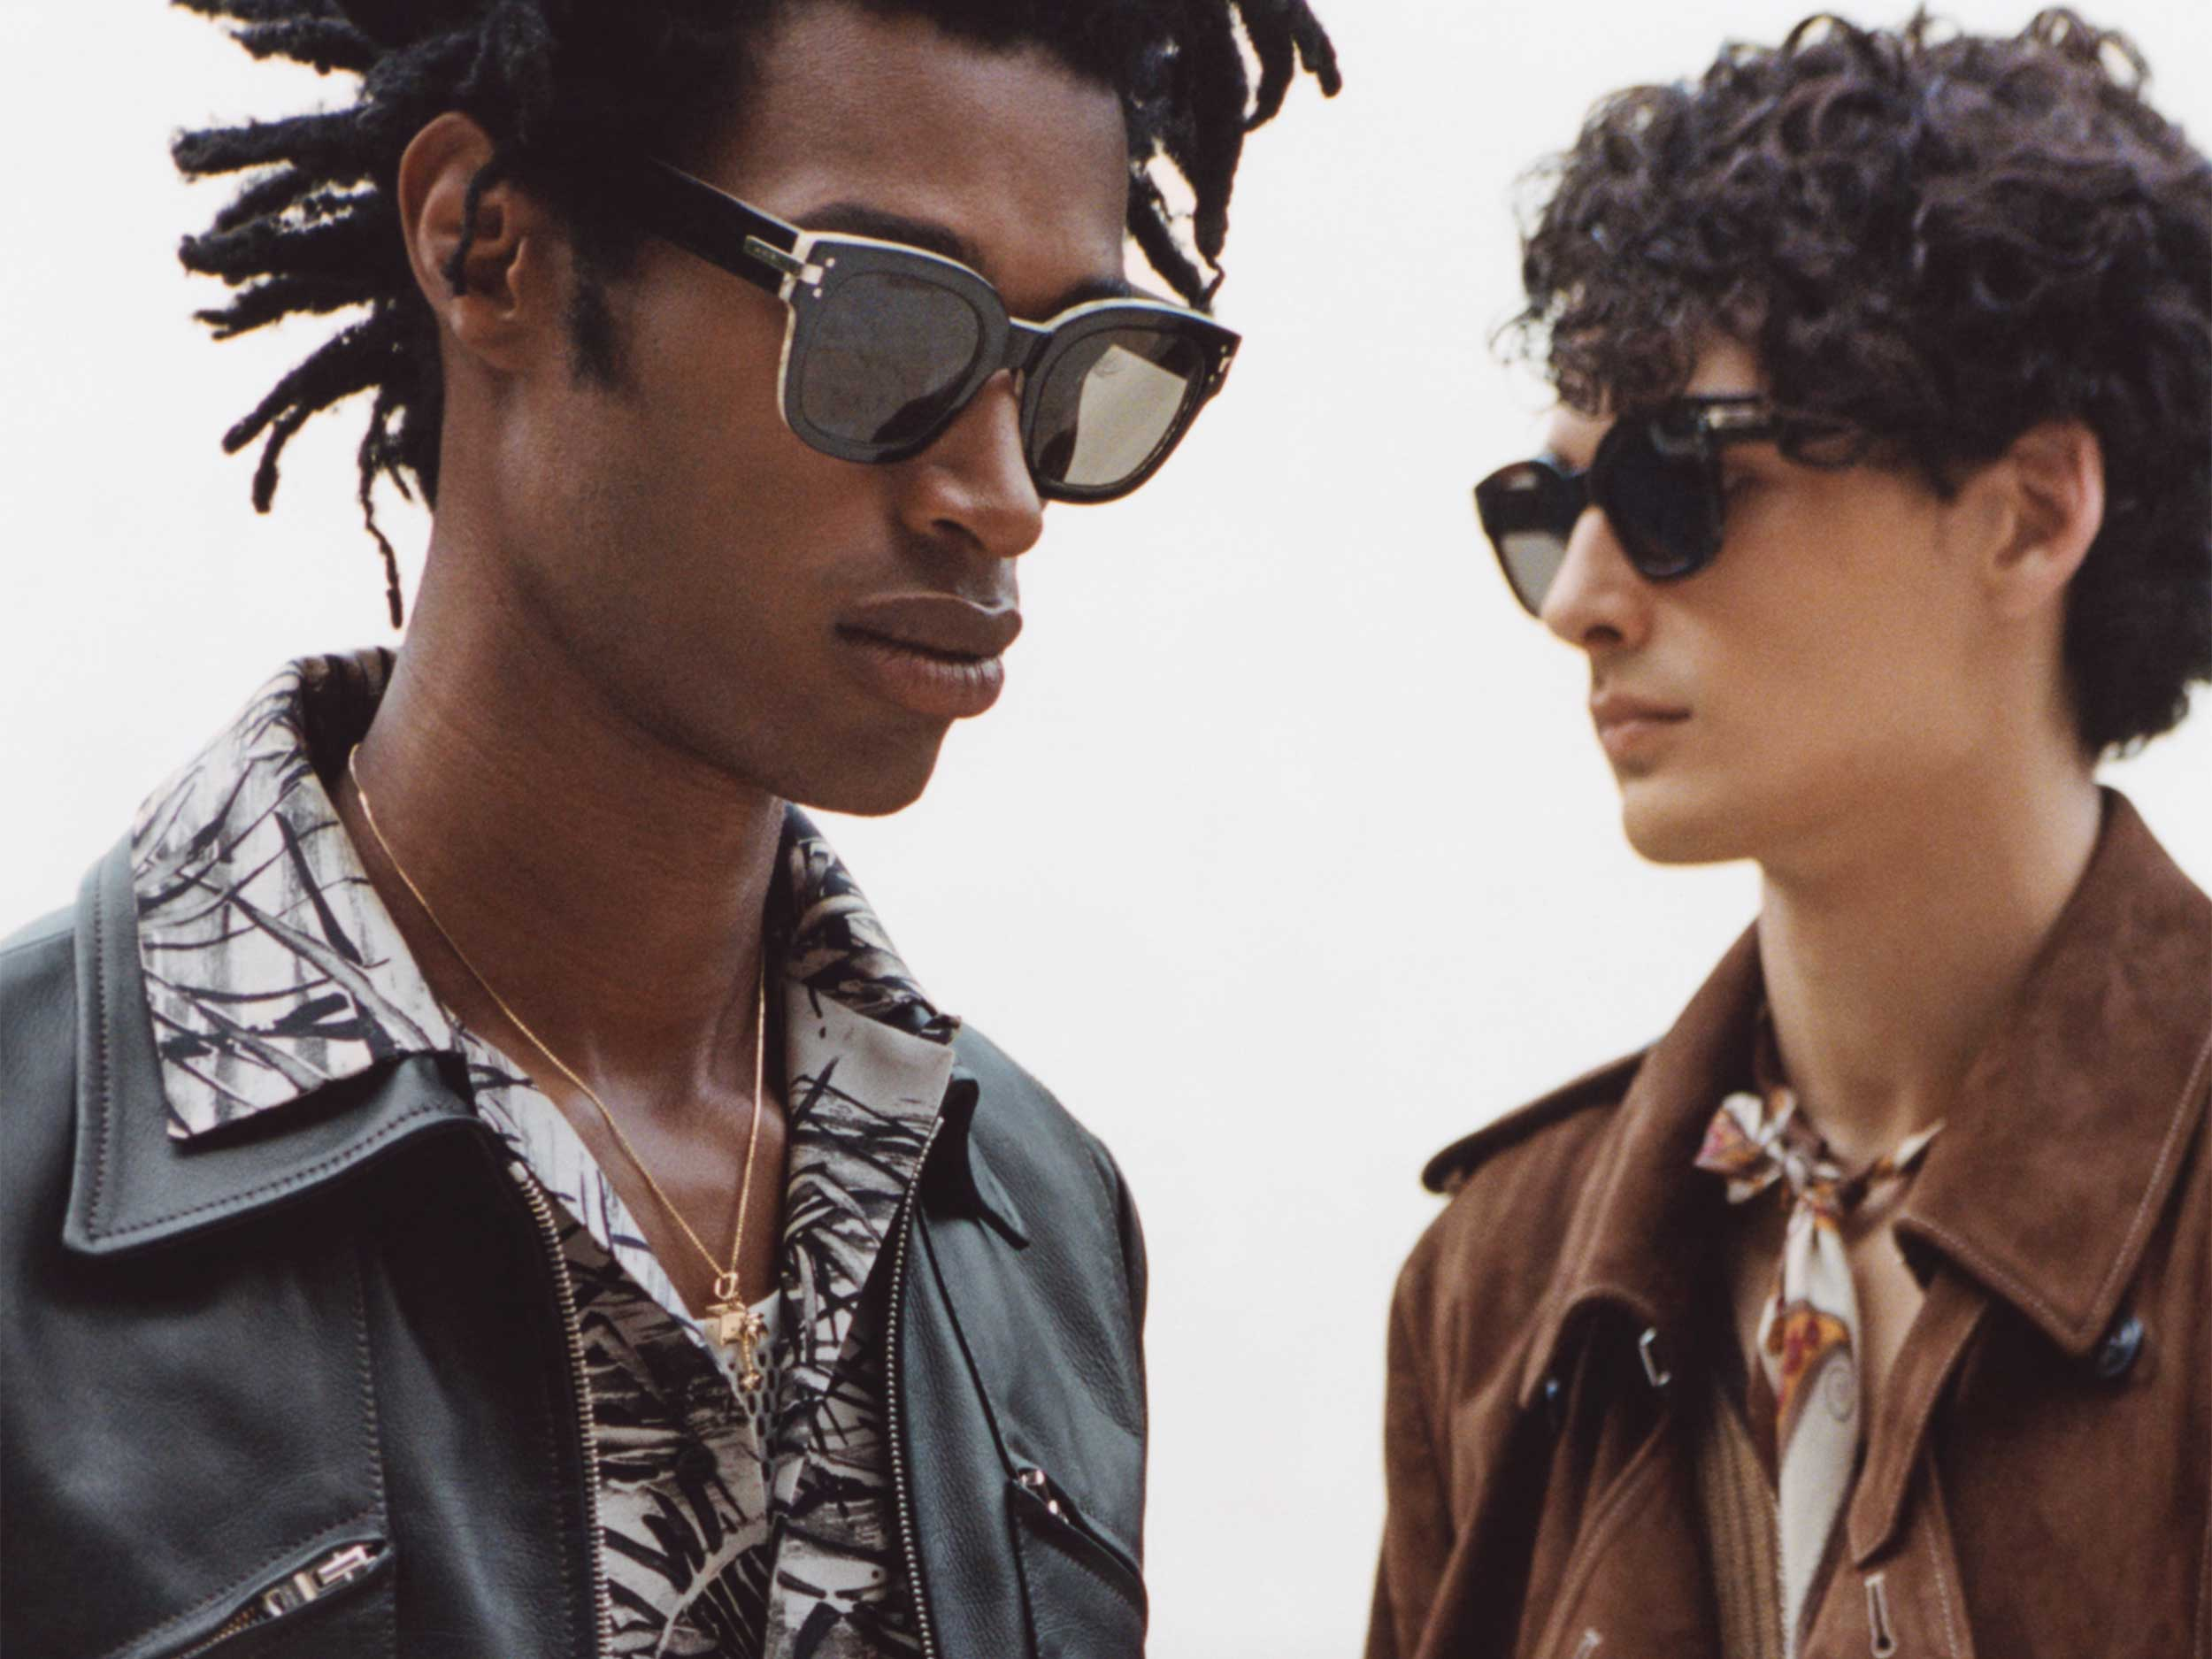 Amiri's Spring/Summer 2022 collection explores the dynamic between reality and imagination